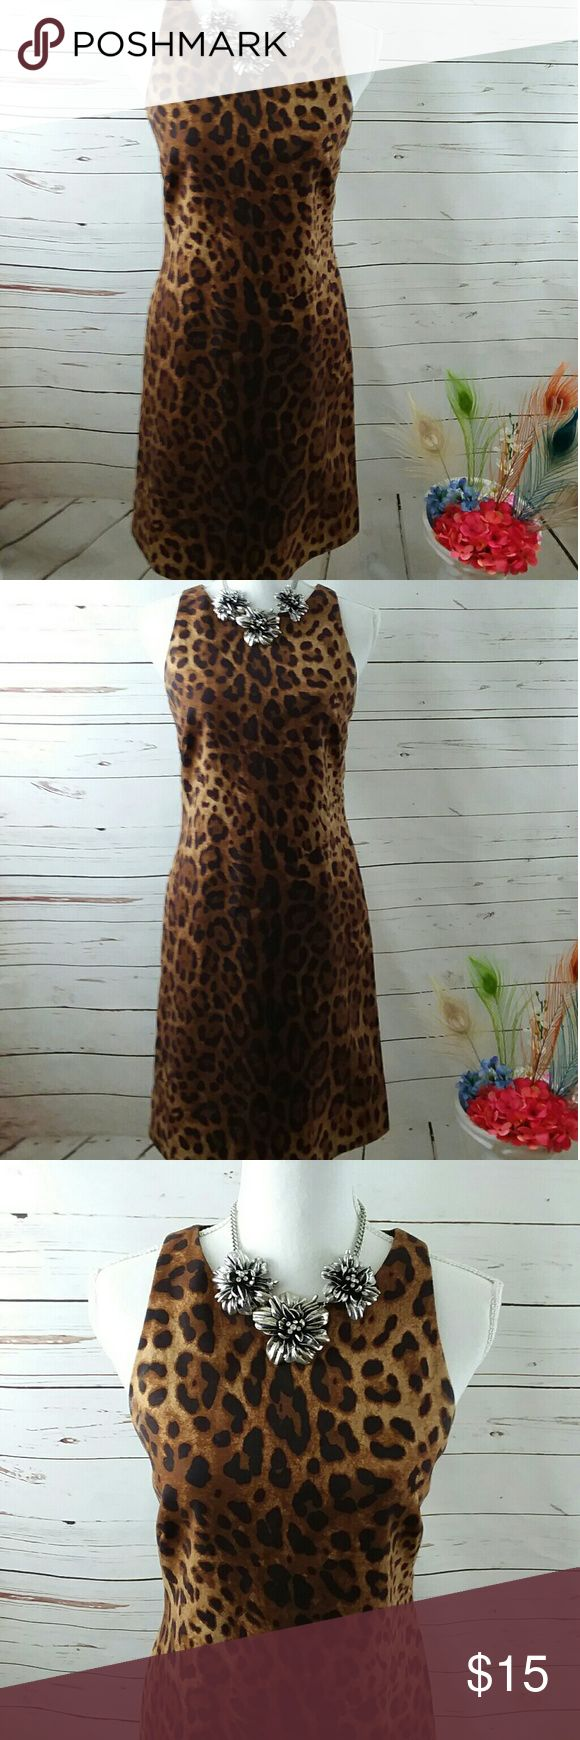 RAFAELLA ANIMAL PRINT SHIFT DRESS SZ 6P Does is a lady's Rafaella petite shift dress. It is a 6 petite. It is lined. It is brown light brown and black animal print new line it is in great preowned condition and is hold without staying or flaws. Rafaella Dresses Midi